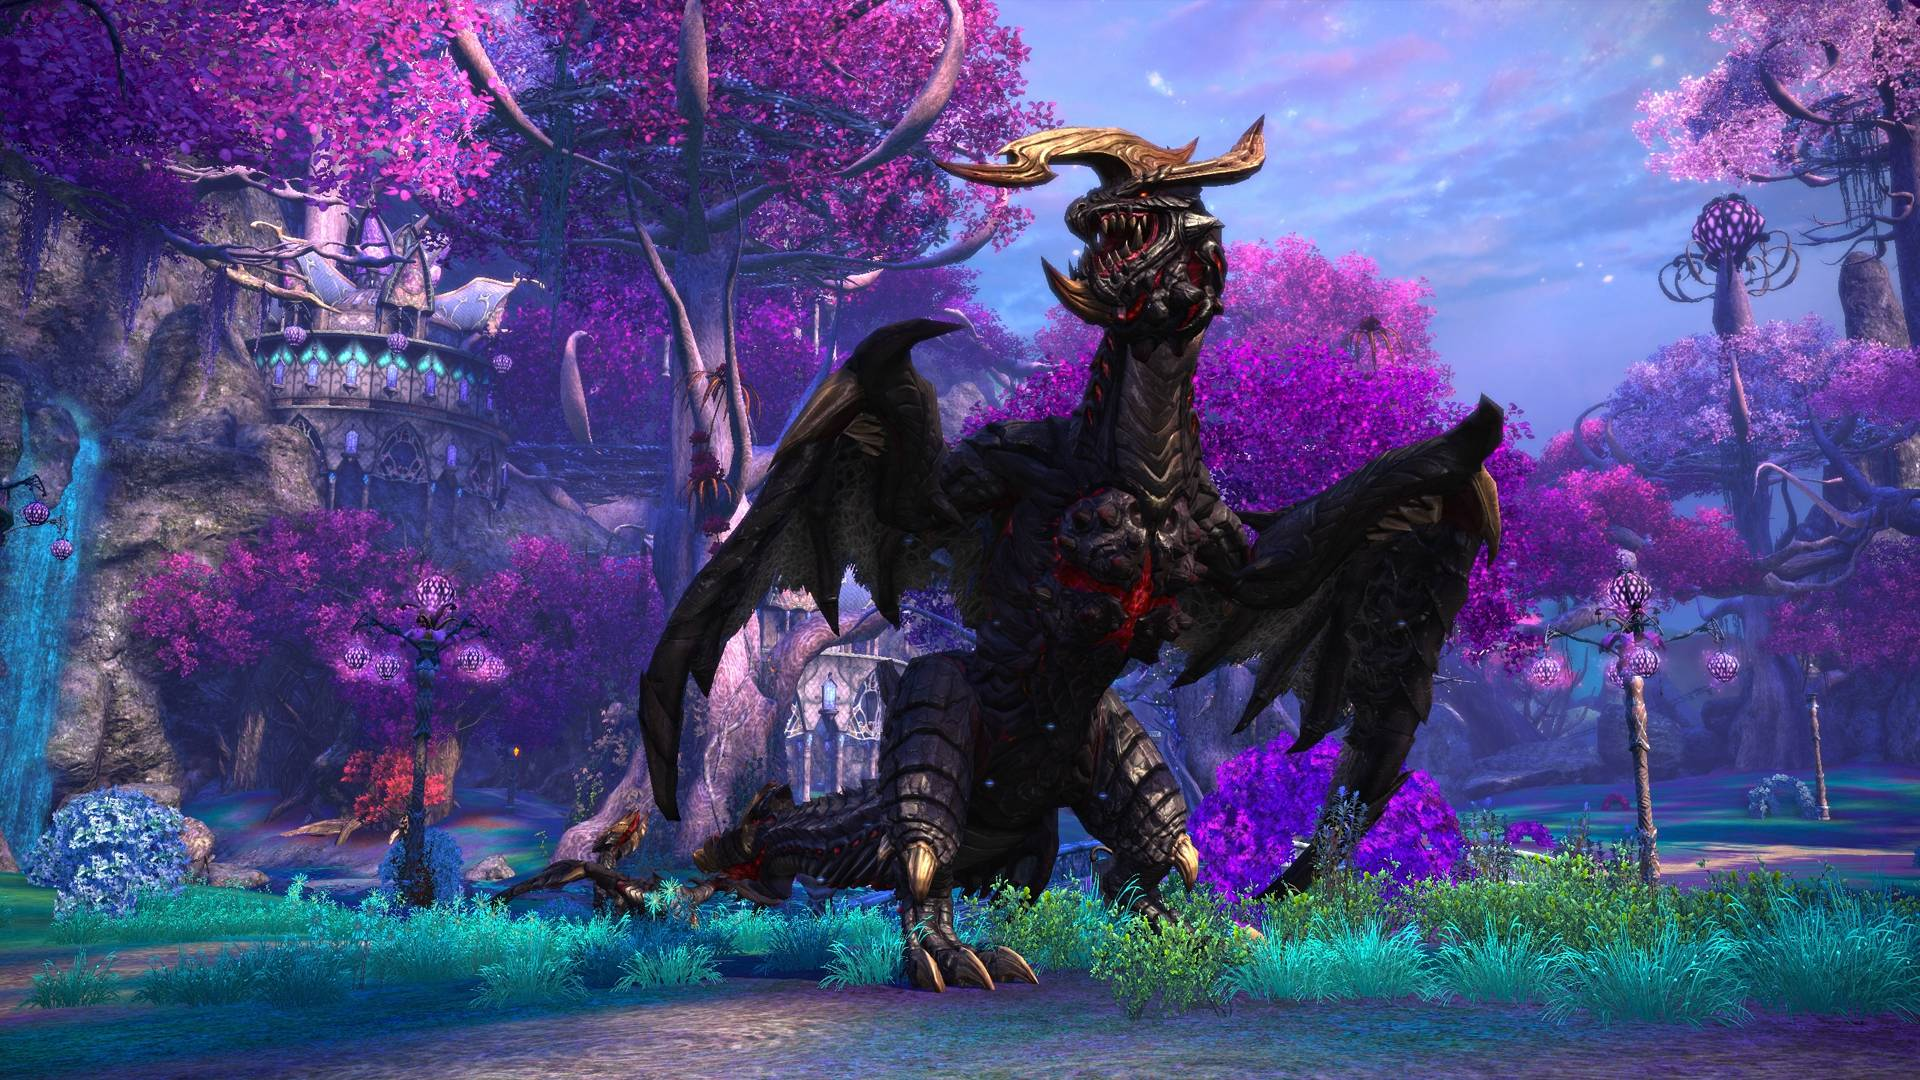 Free online 3d mmorpg browser games no download A list of